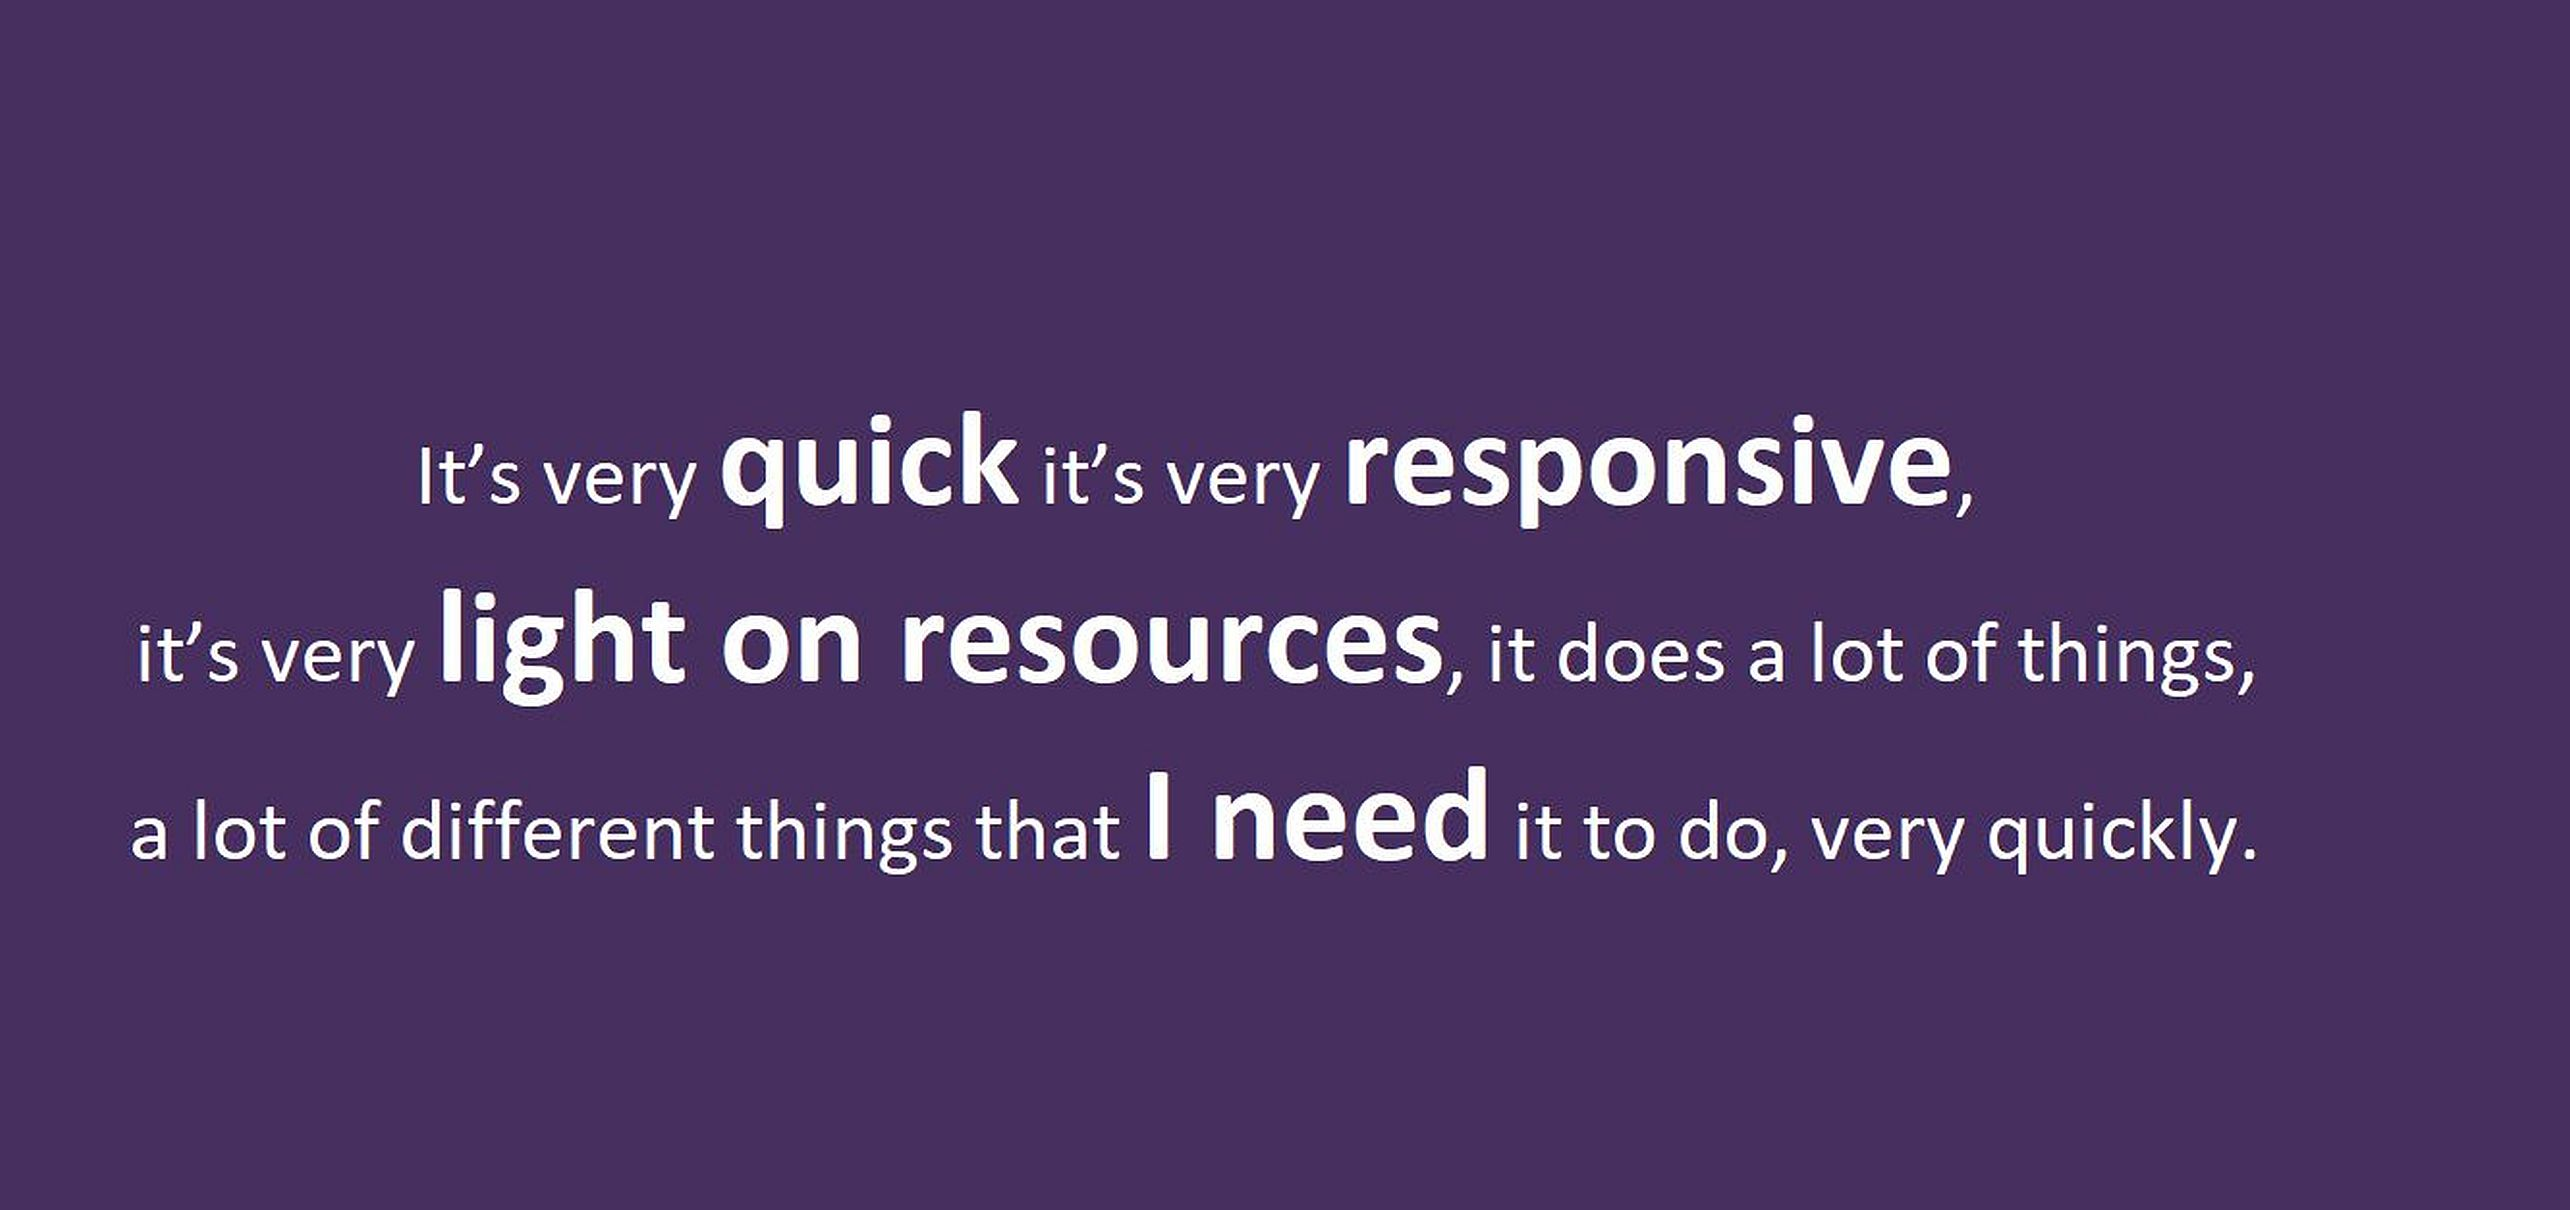 "Text: ""It's very quick, it's very responsive, it's very light on resources.  it does a lot of different things that I need it to do, very quickly."" in white on purple."